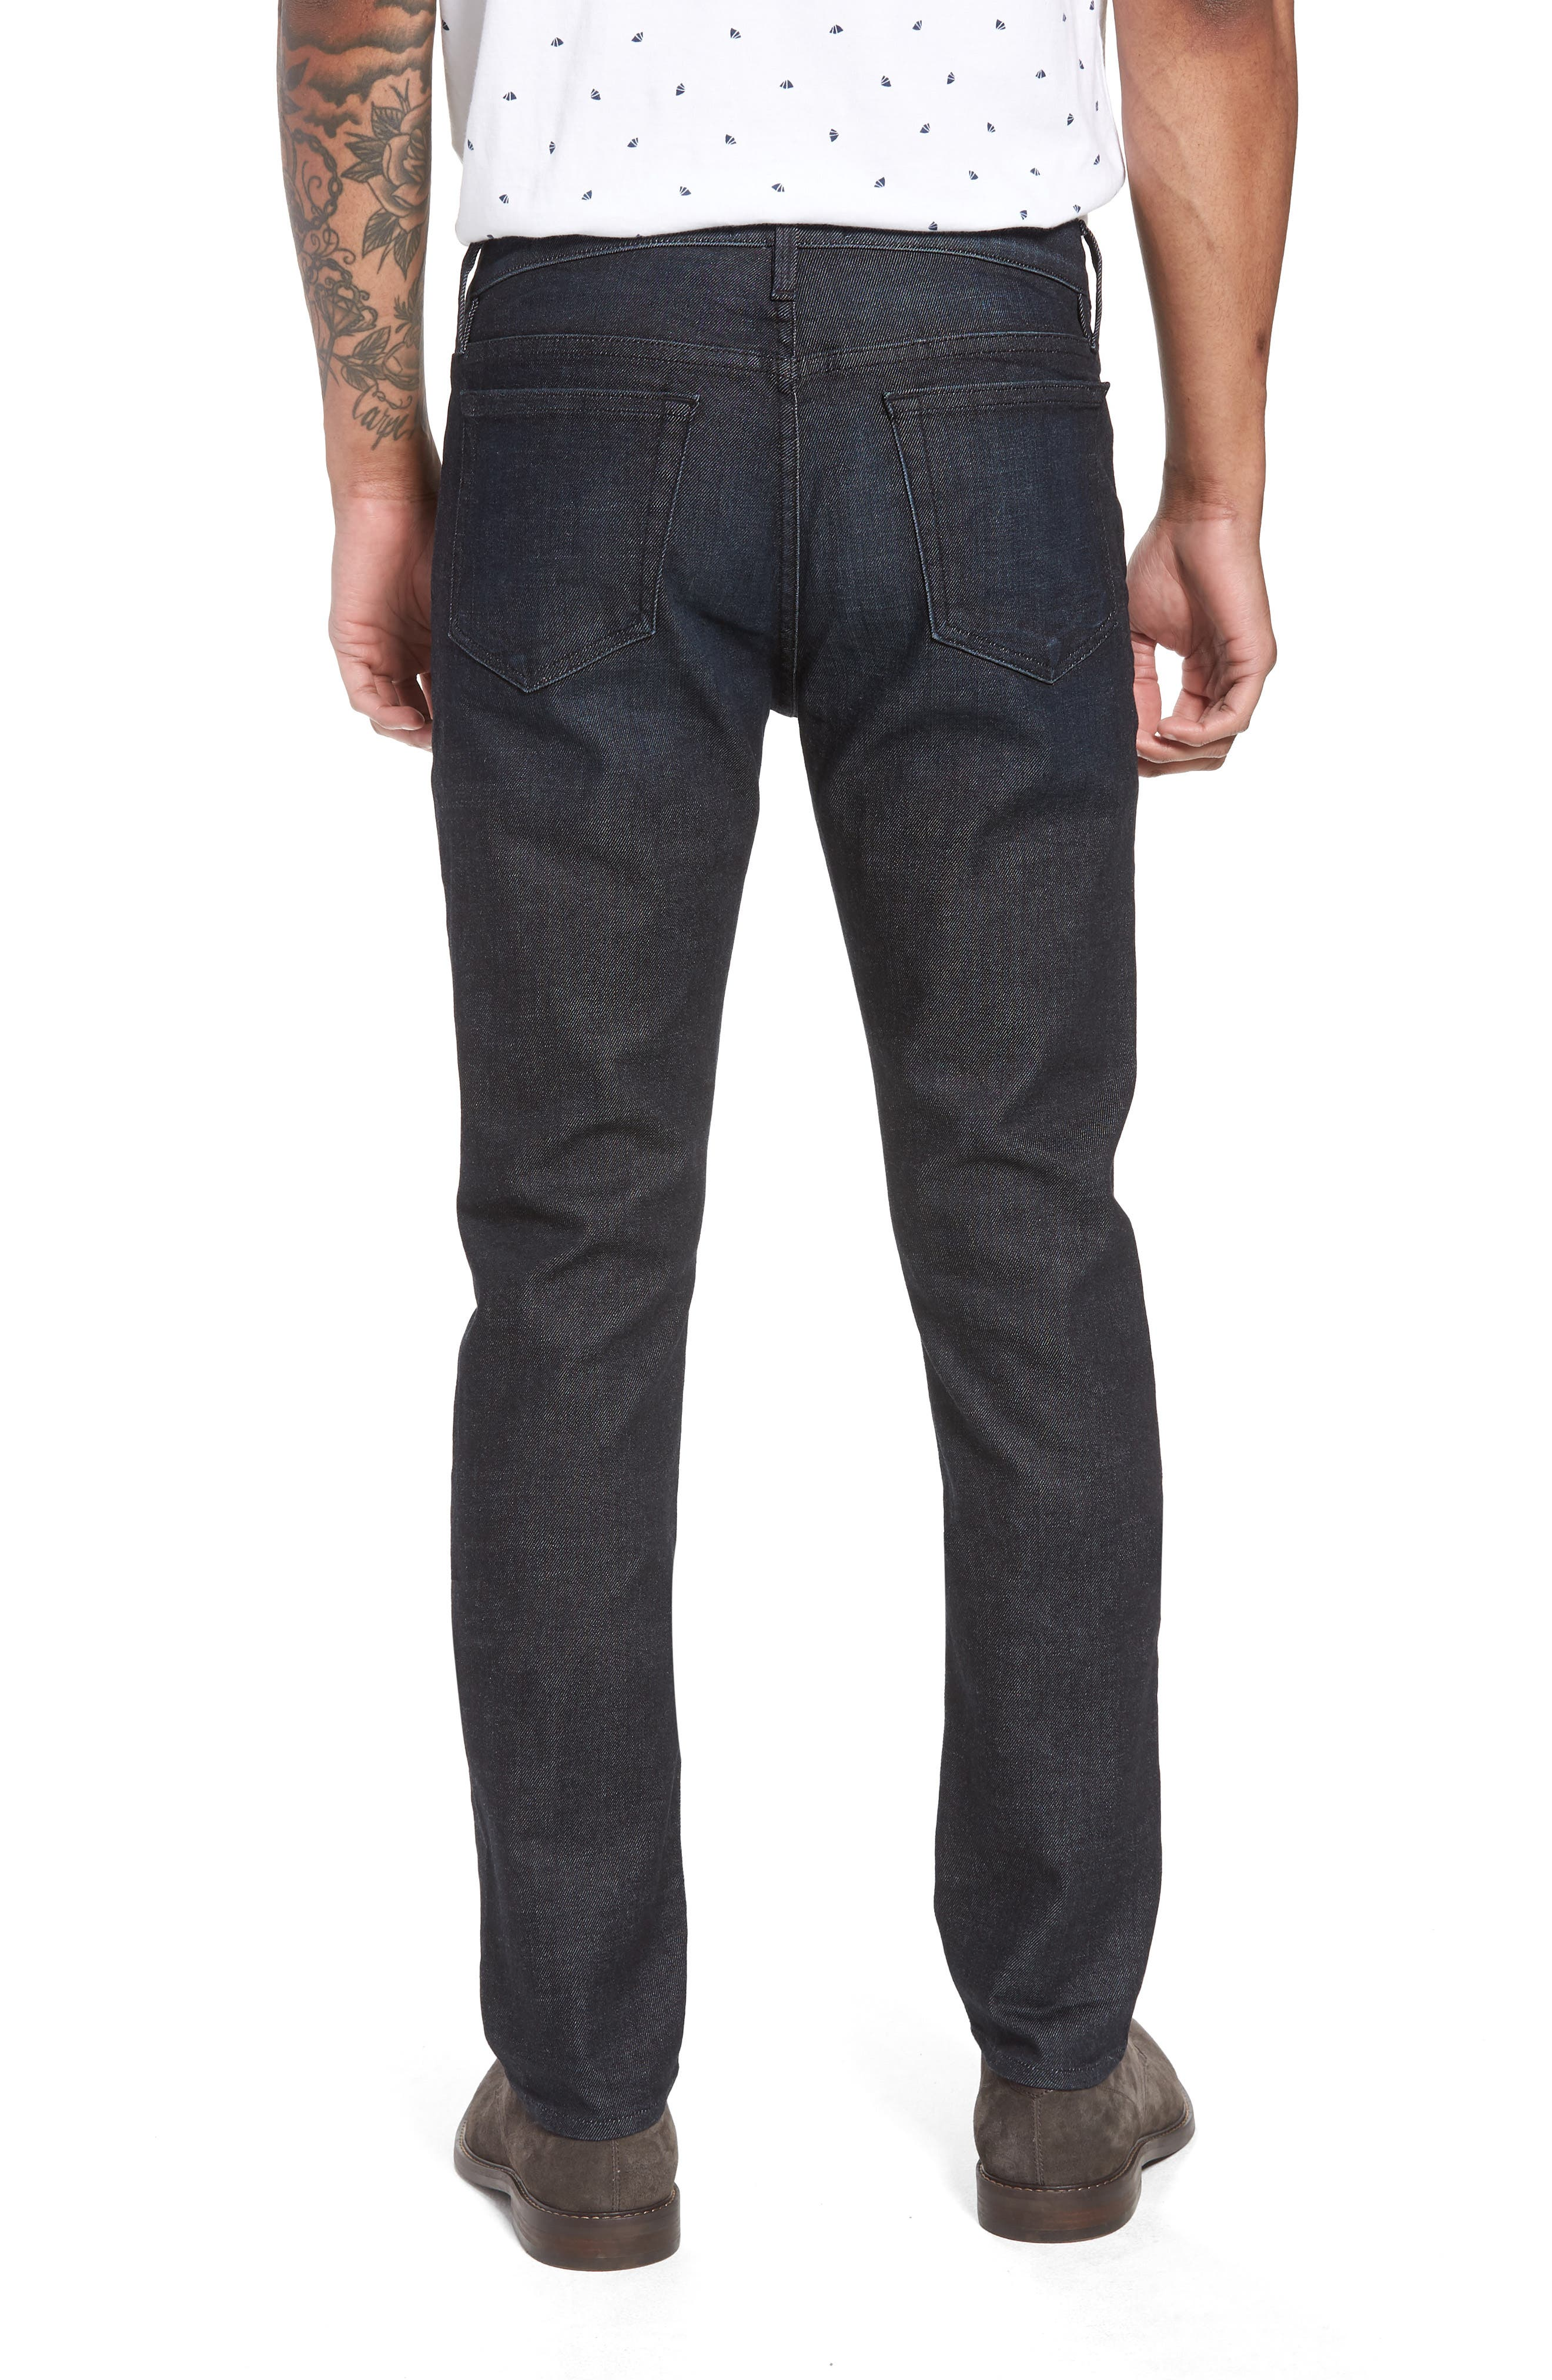 L'Homme Skinny Jeans,                             Alternate thumbnail 2, color,                             MANHATTAN